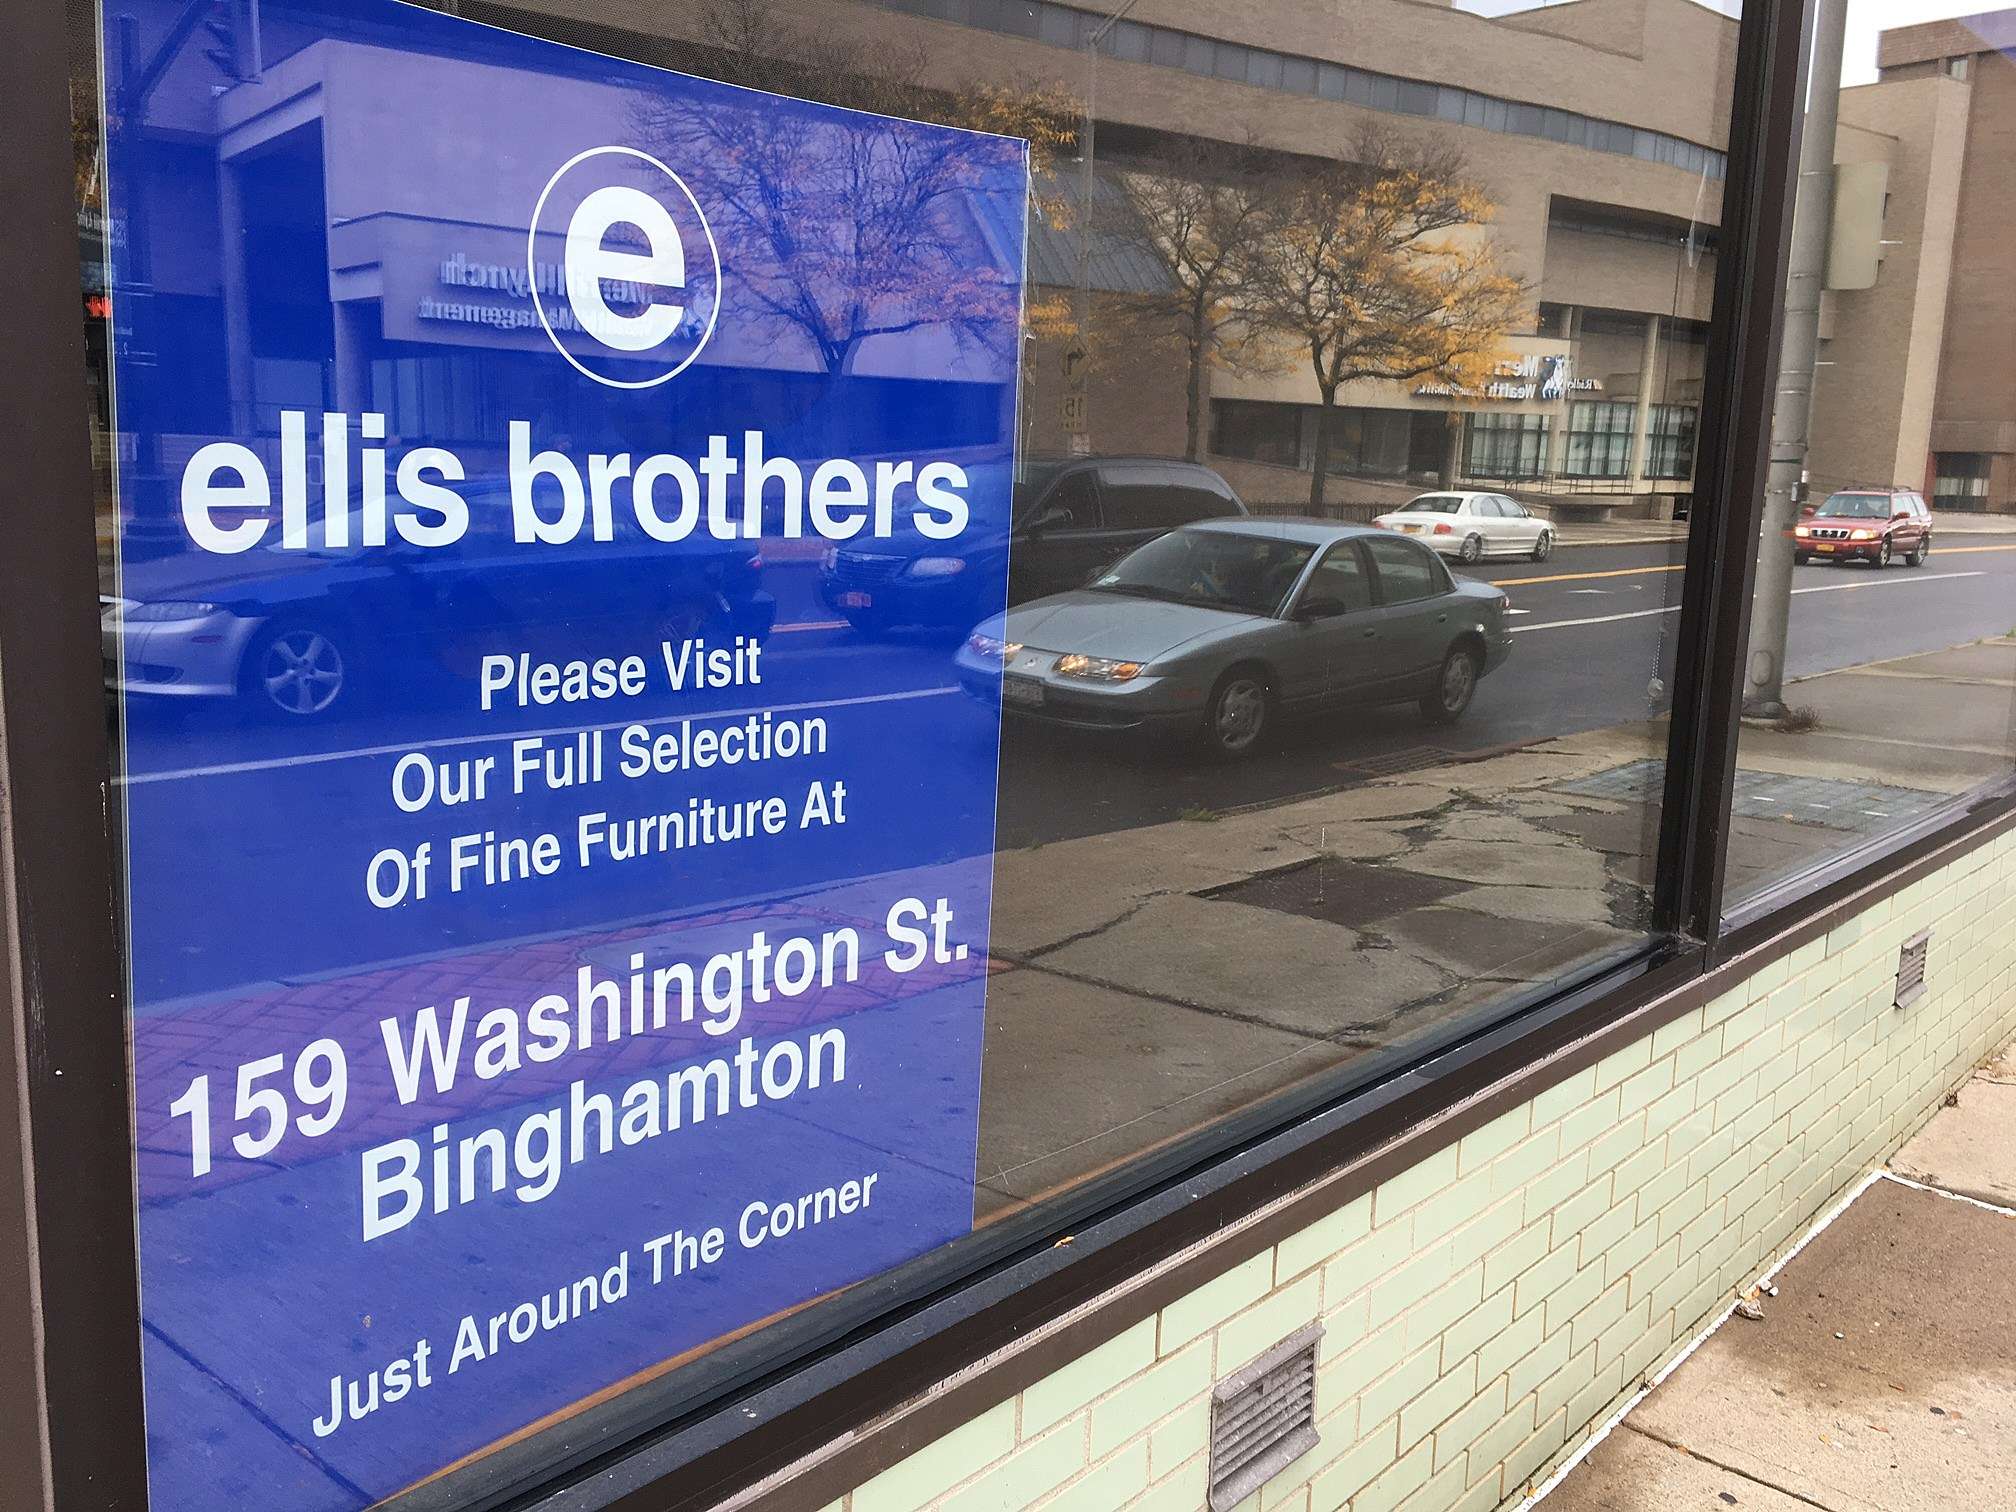 Beautiful Ellis Brothers Furniture Plans To Renovate The Old Penney Building At Court  And Hawley Streets.